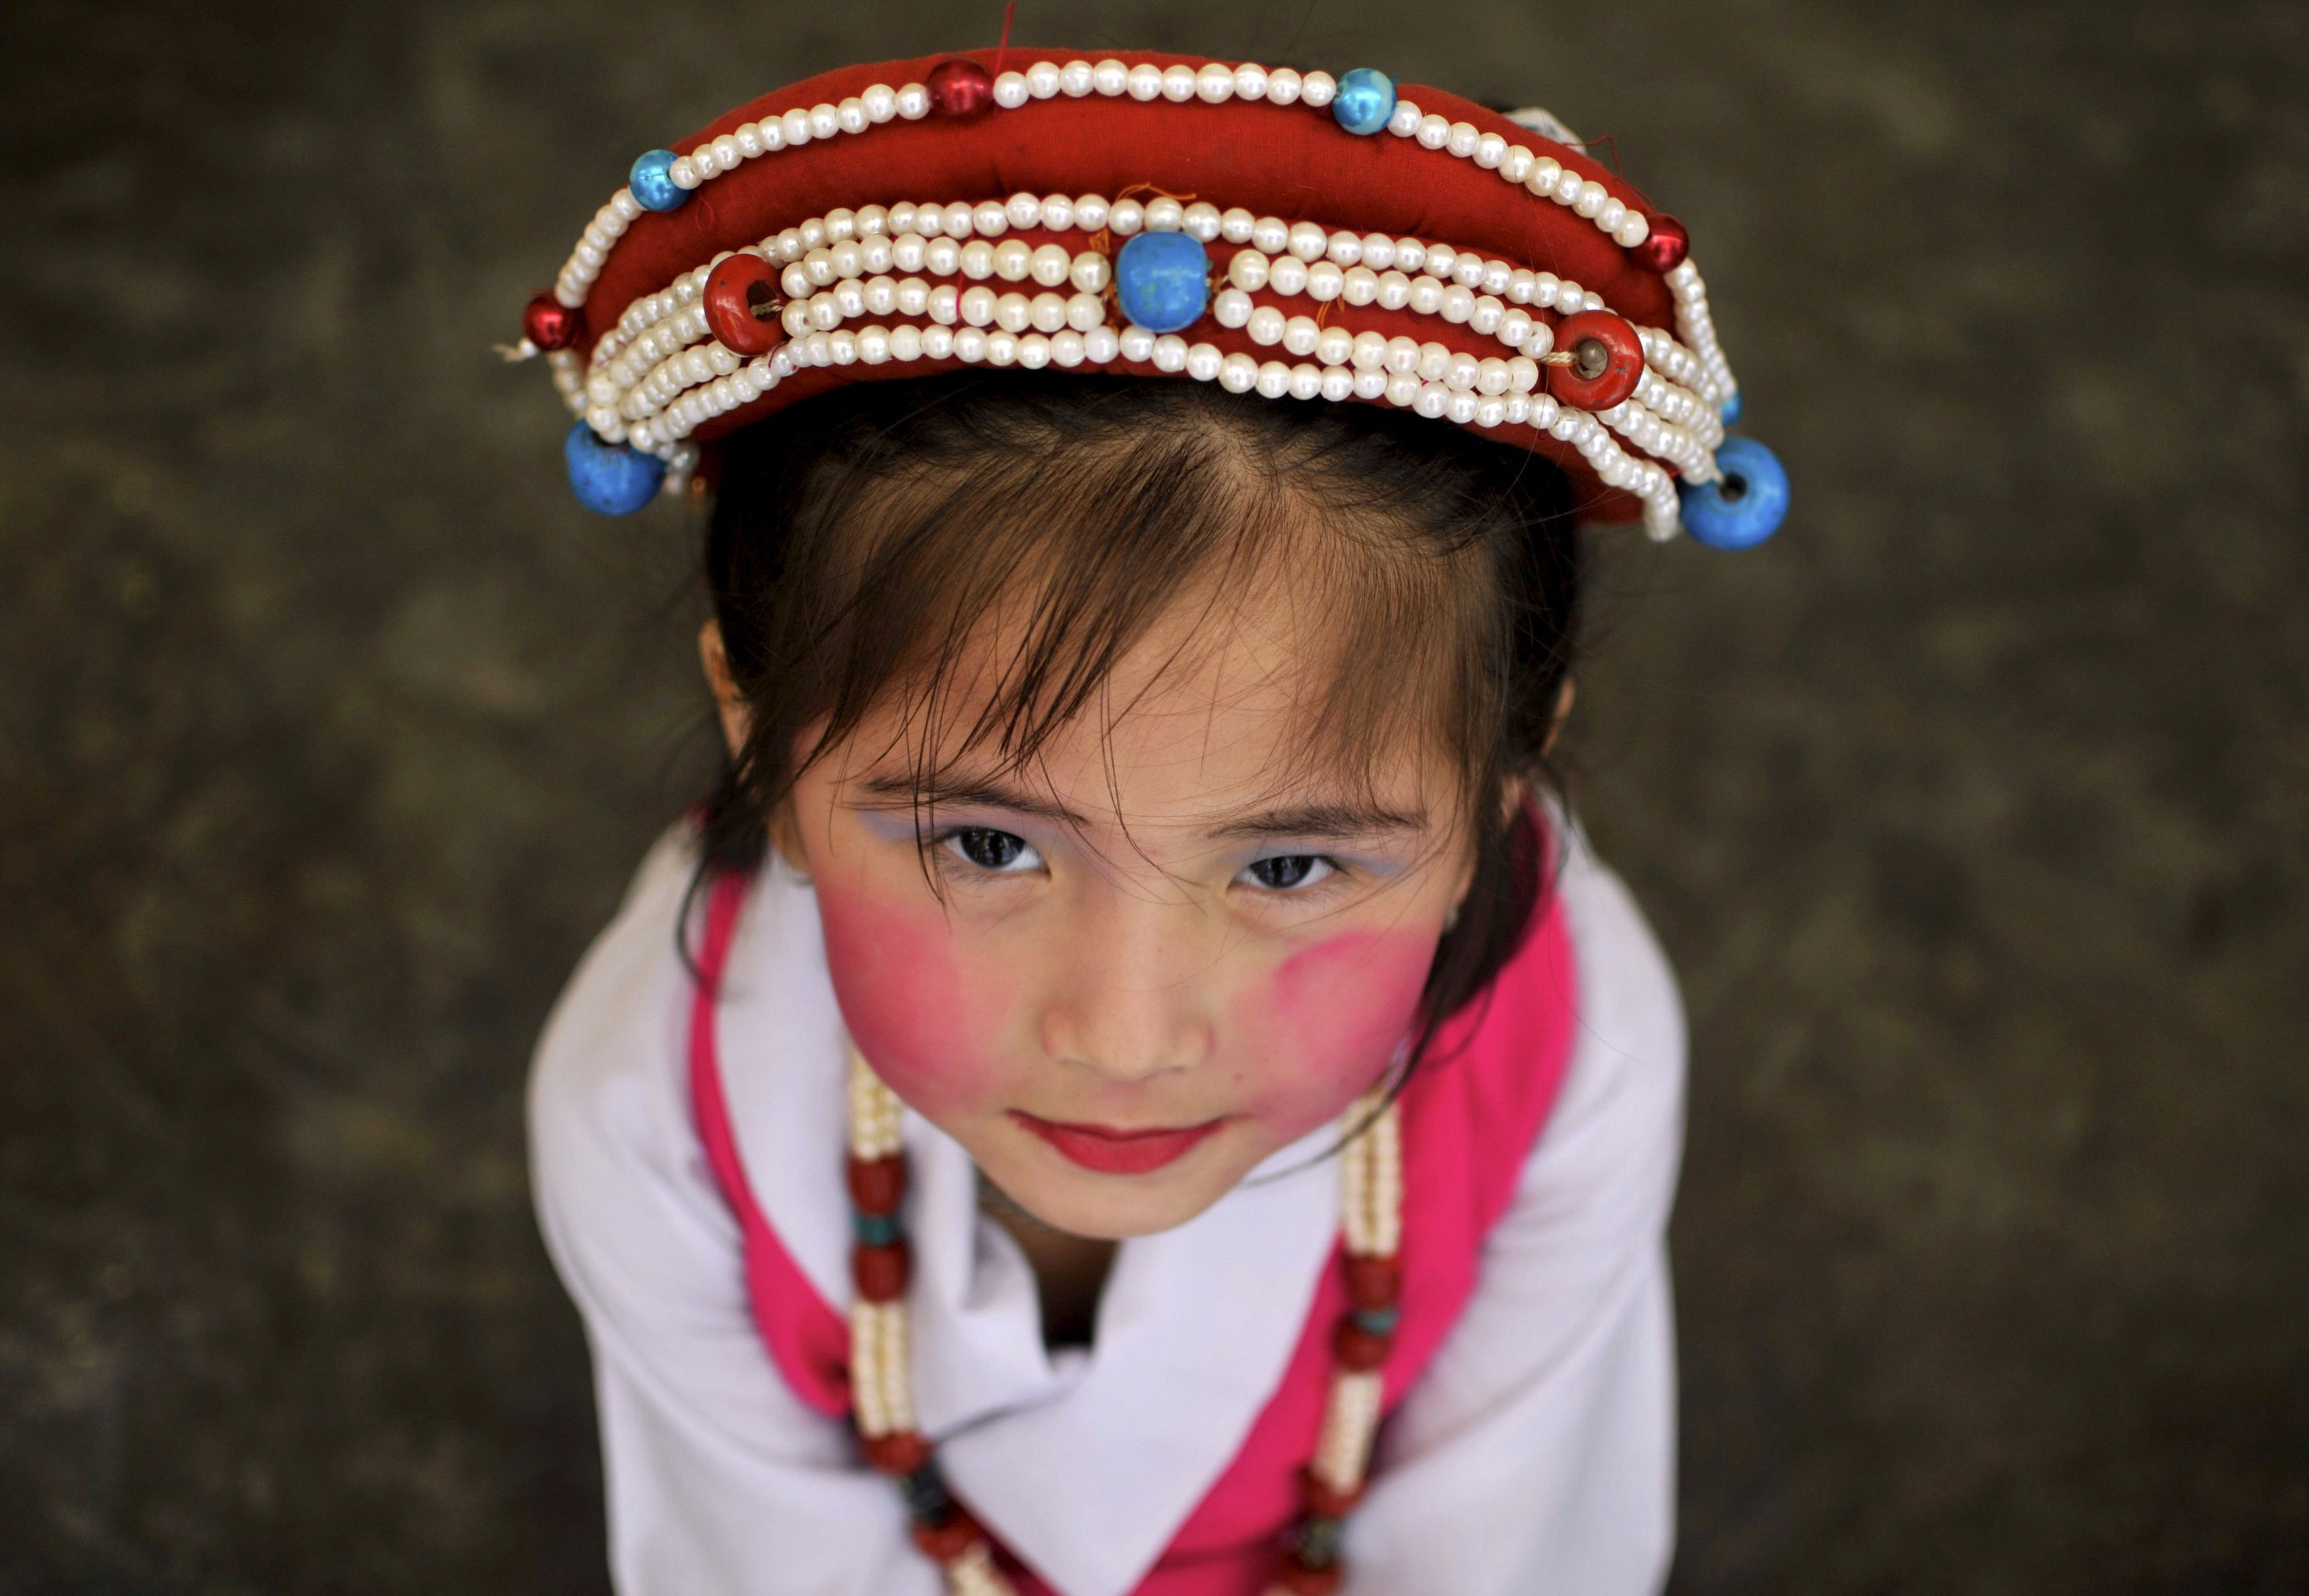 A Tibetan girl in a traditional costume waits backstage before performing at a celebration for the 80th birthday of the Dalai Lama, at the Sera Jey Monastery in Bylakuppe in the southern state of Karnataka, India on July 6, 2015.